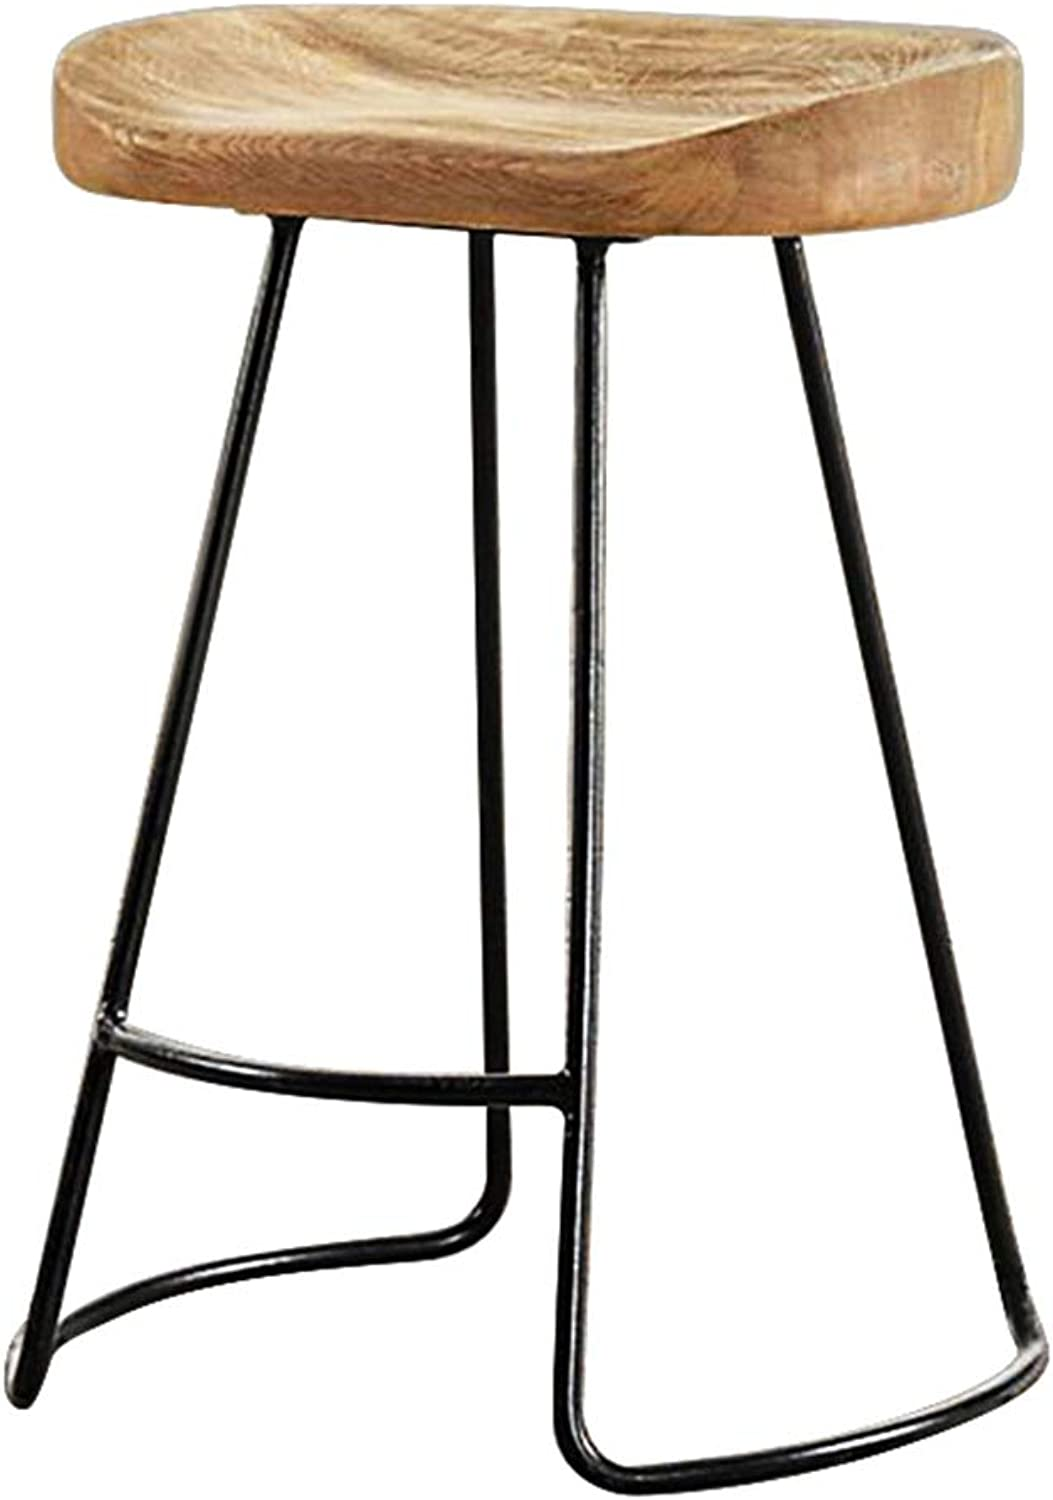 LJFYXZ Bar Stool Simple Solid Wood mat Iron Frame Strong Carrying Capacity Cozy 2 Height Options Black (Size   45CM)